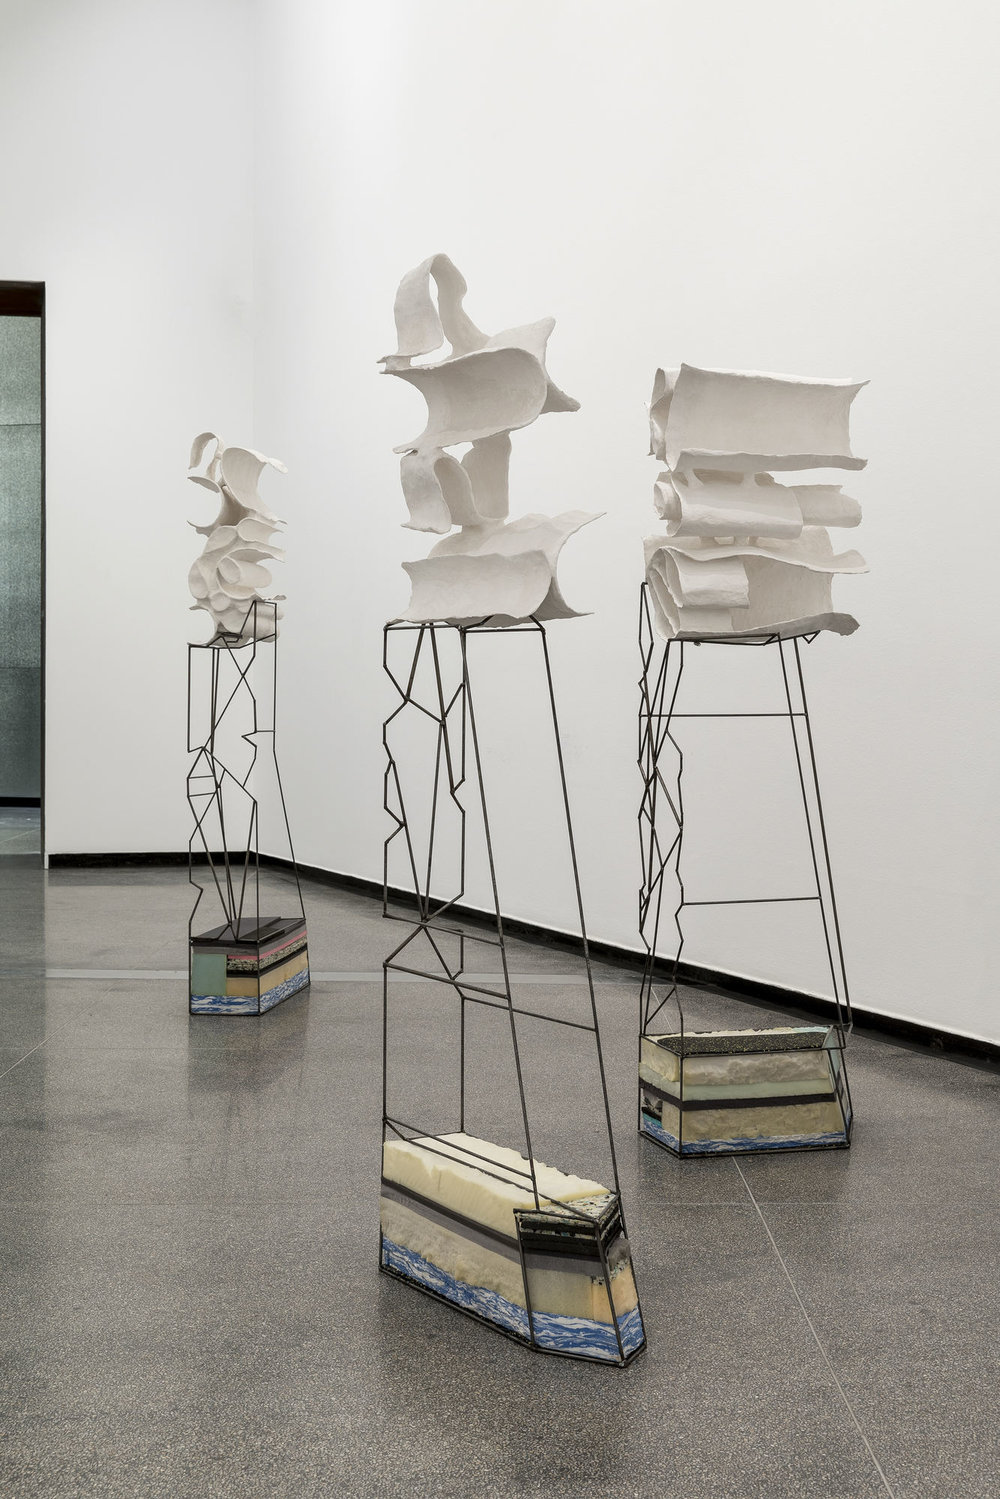 Dwelling-Poetically-at-Australian-Centre-for-Contemporary-Art-Works-54.jpg